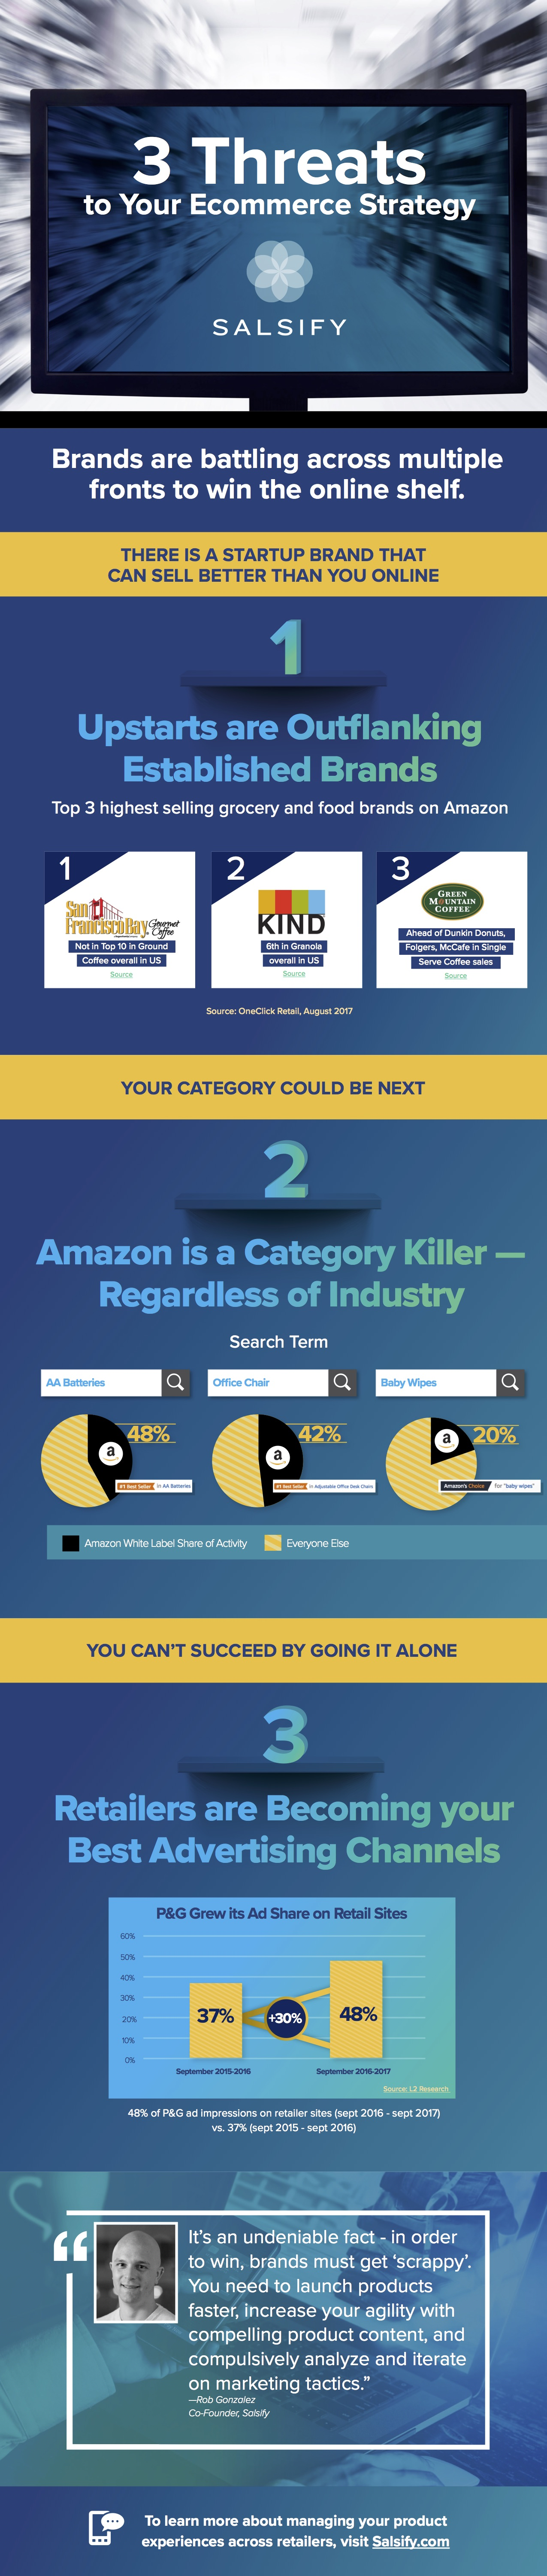 Ecommerce_Strategy_Threatened_Salsify_Infographic_Final_website.jpg